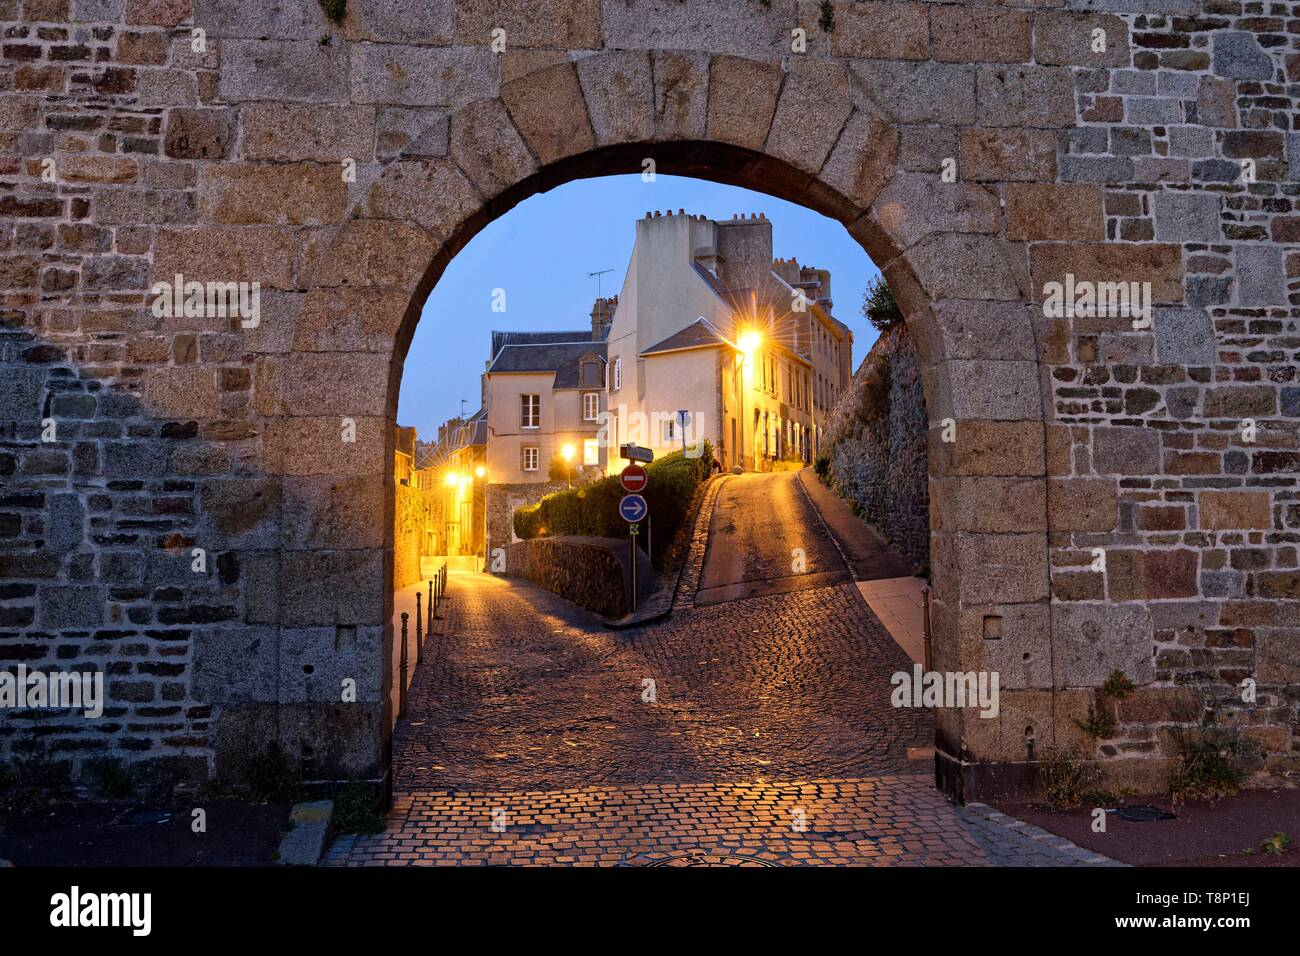 France, Manche, Cotentin, Granville, the Upper Town built on a rocky headland on the far eastern point of the Mont Saint Michel Bay, gate to the upper city - Stock Image